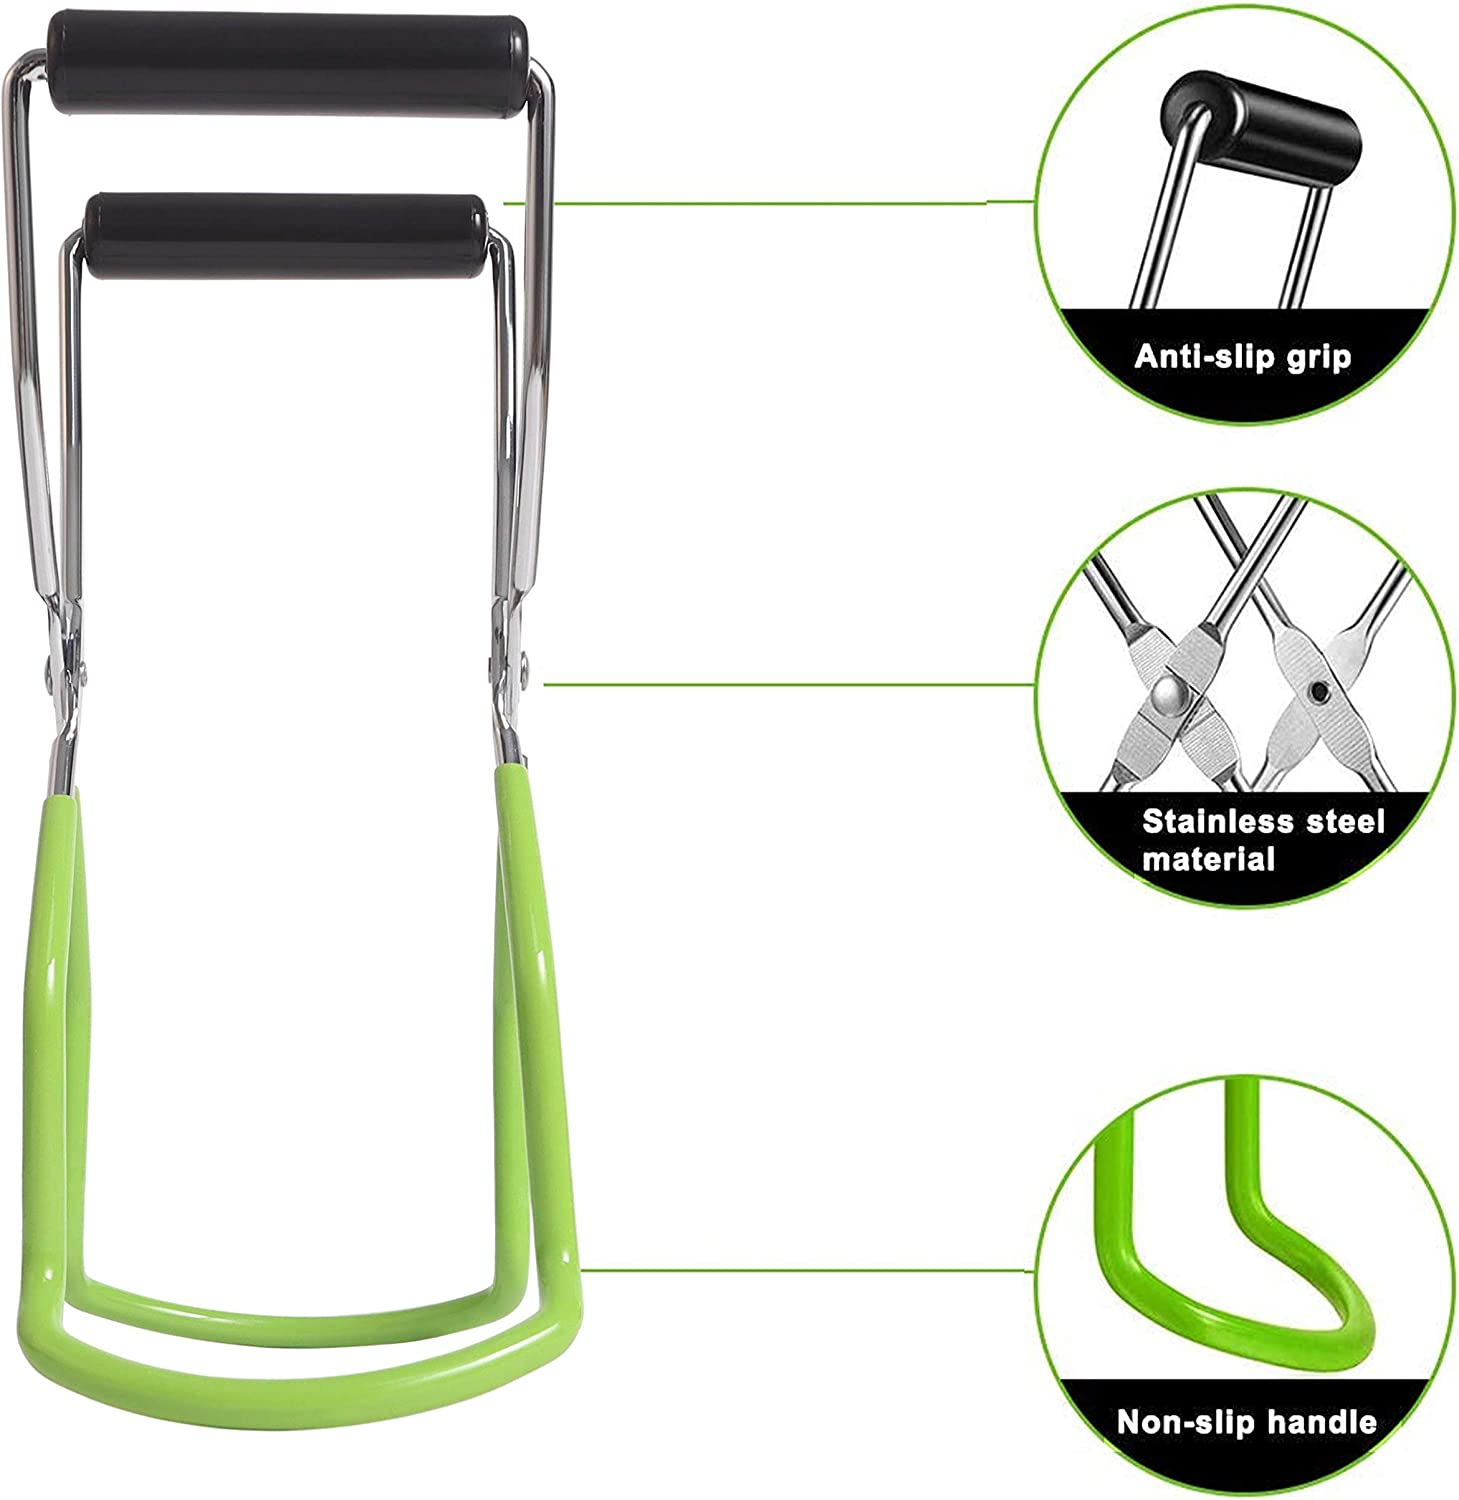 2 Pack Canning Jar Lifter Tongs Stainless Steel Jar Grips with Rubber Grip Handle for Safe and Secure Cans Clamp for Home Kitchen Dining Dinner Restaurant Jars Green, 2